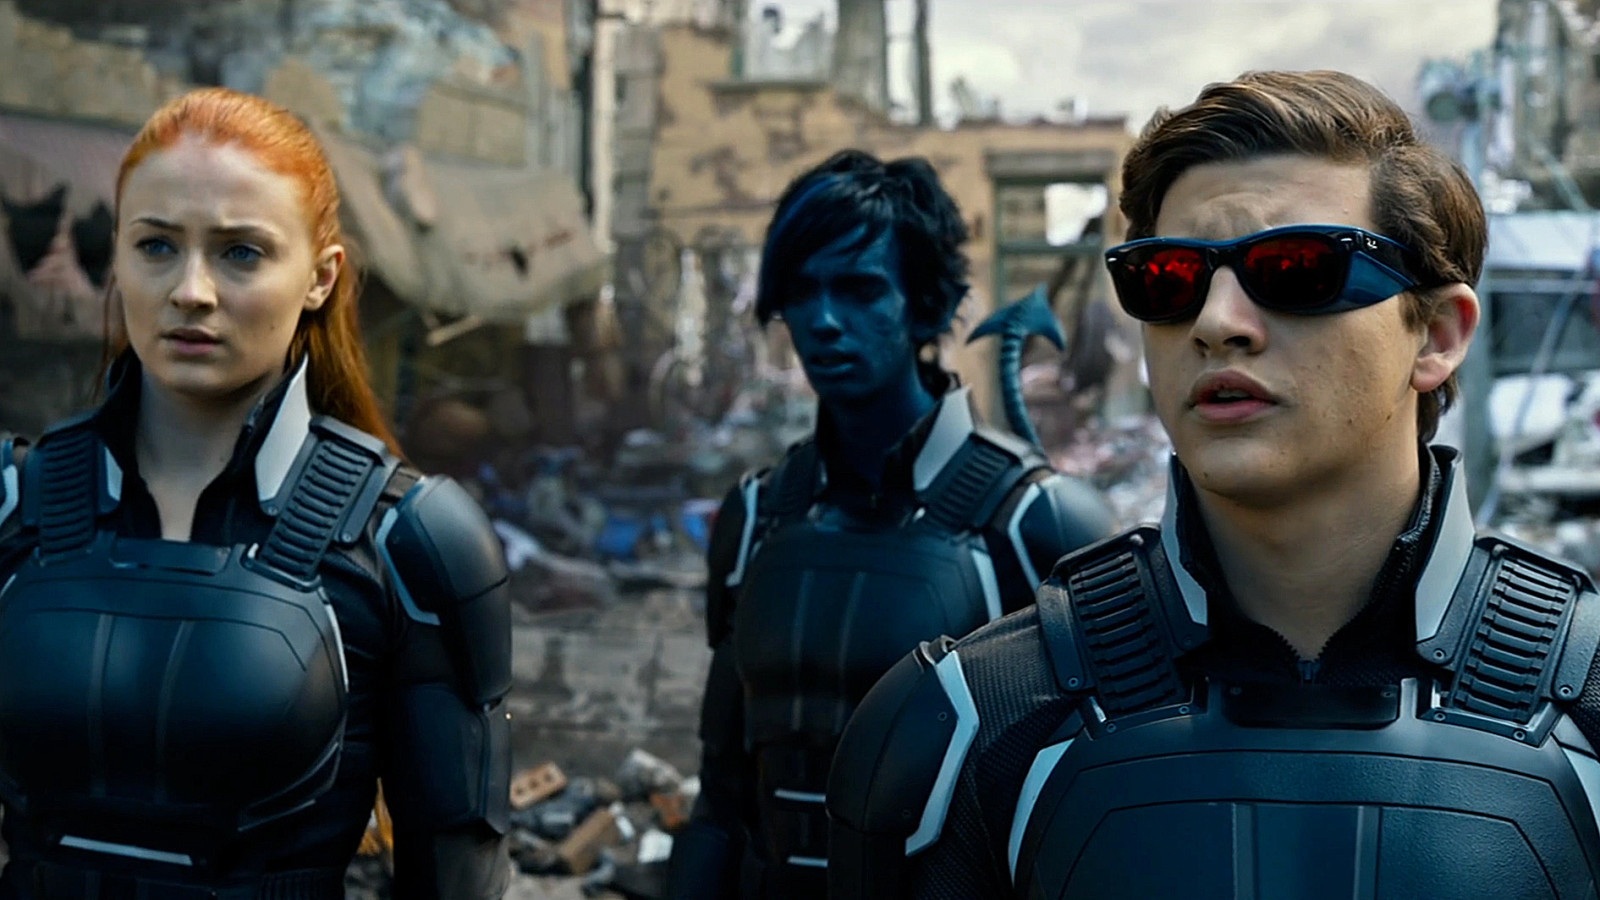 X-Men: Apocalypse actor signs on for two more mutant movies